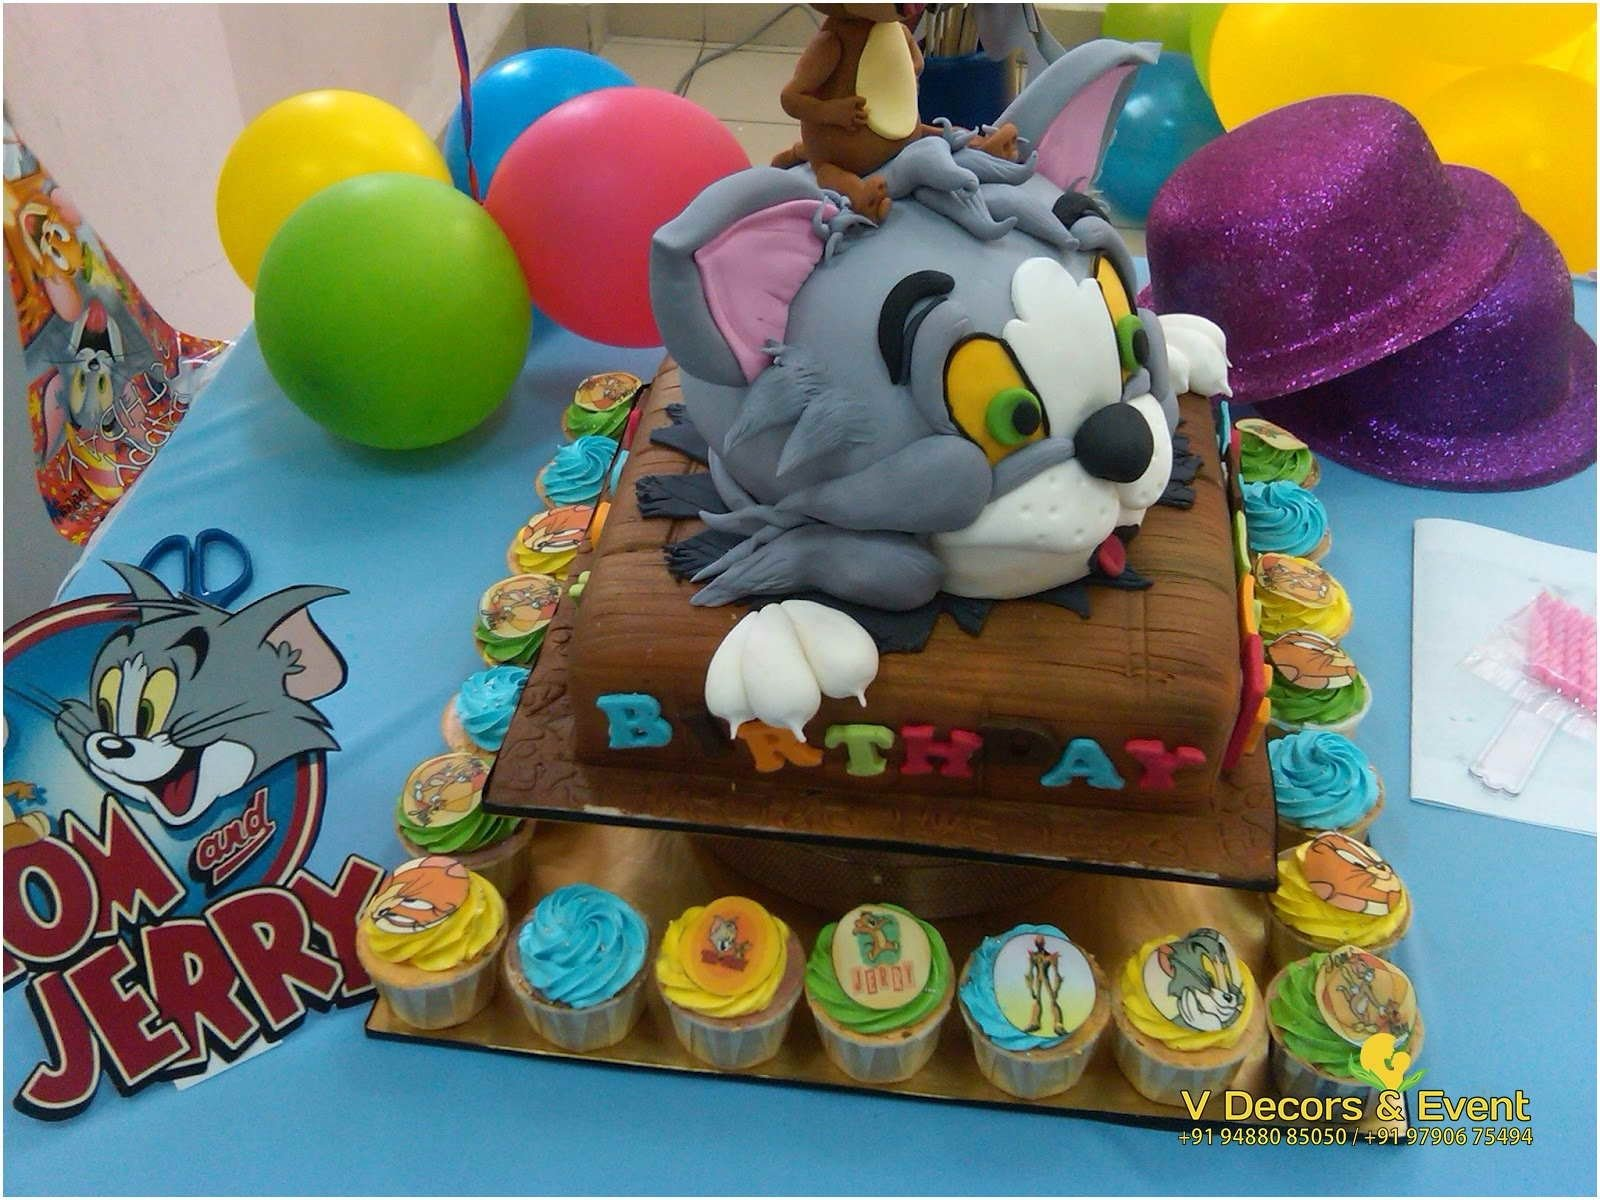 10 Lovely Tom And Jerry Birthday Party Ideas themed birthday tom and jerry decorations pondicherrytom jerry 2021